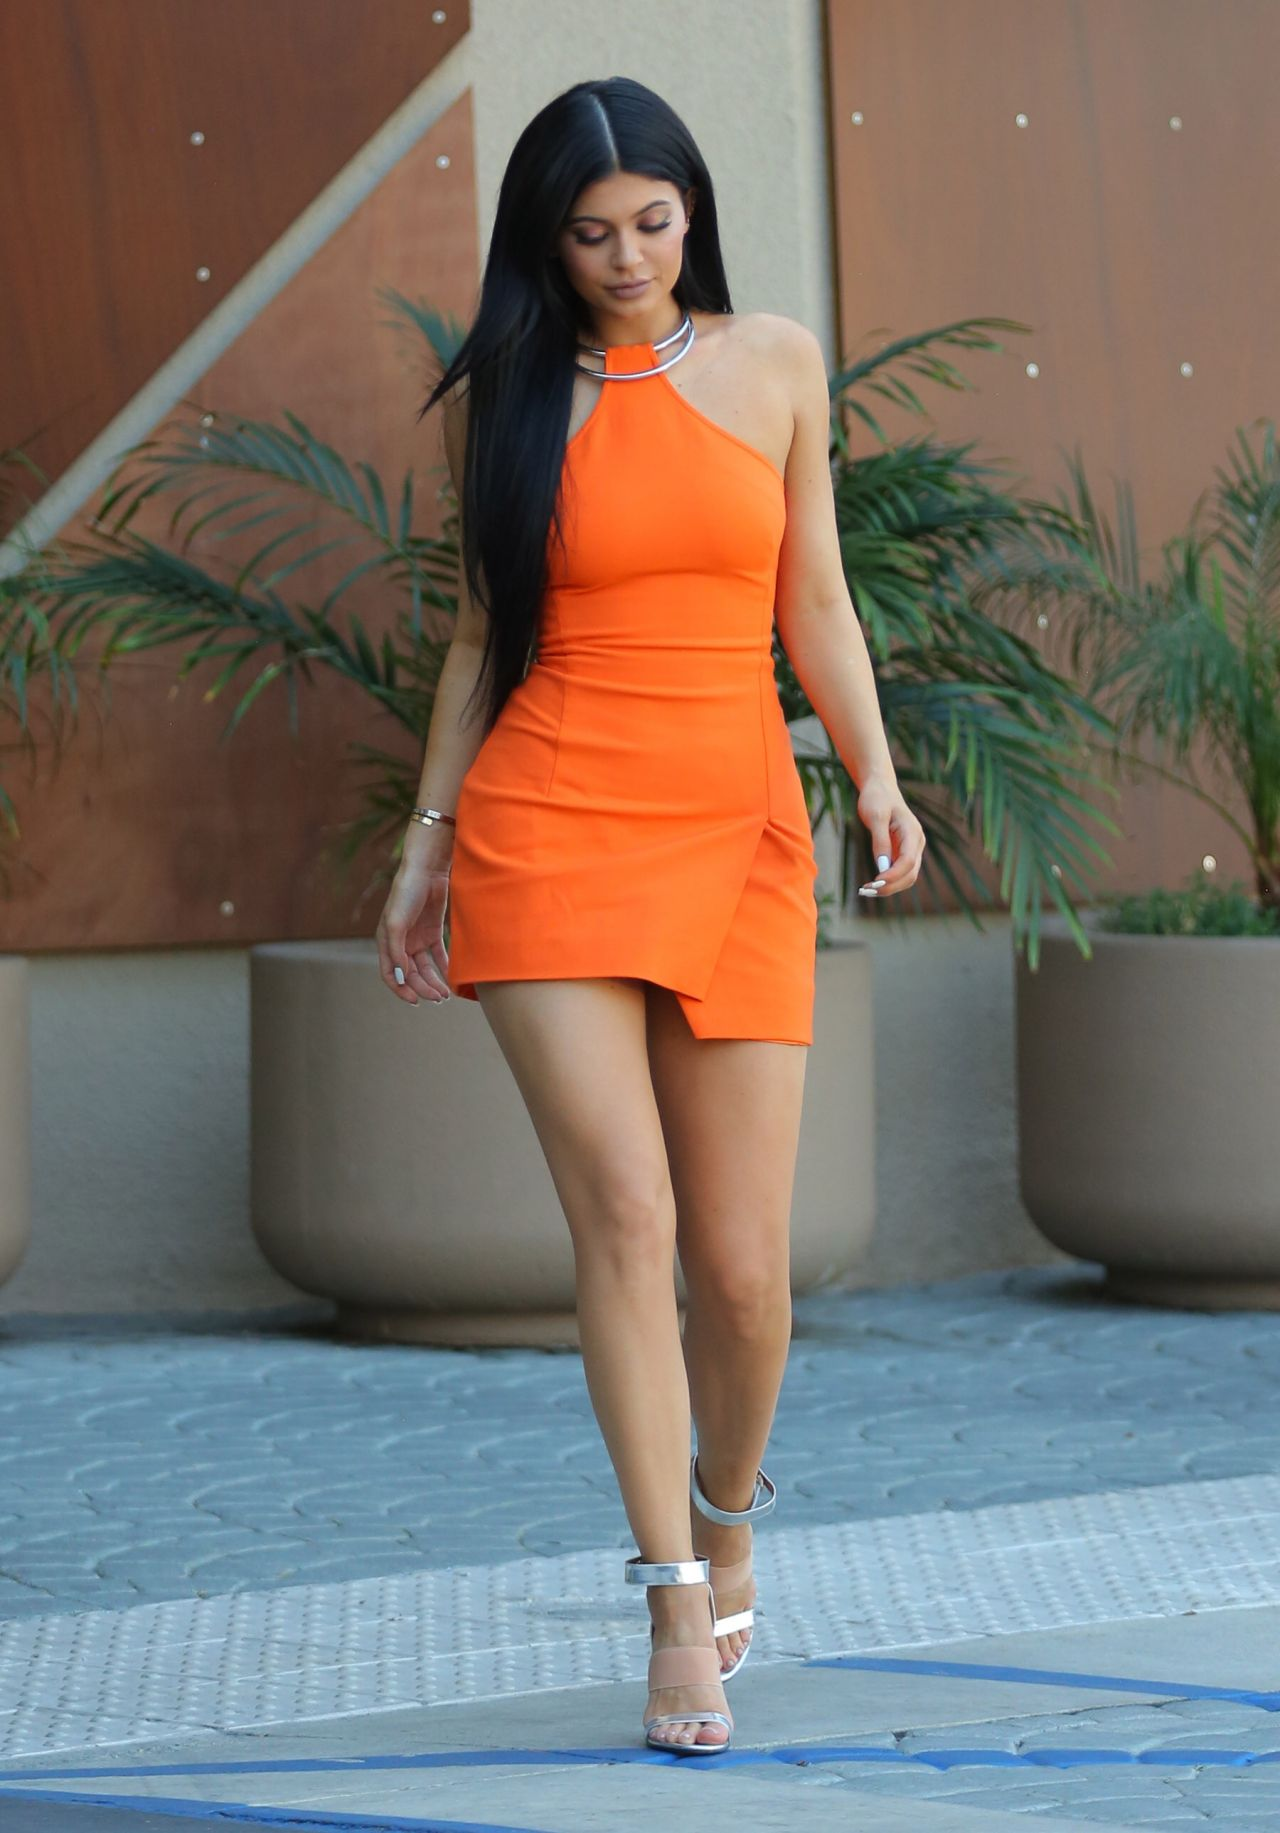 kylie-jenner-in-kaufman-fraco-double-ring-halter-dress-october-2015_4